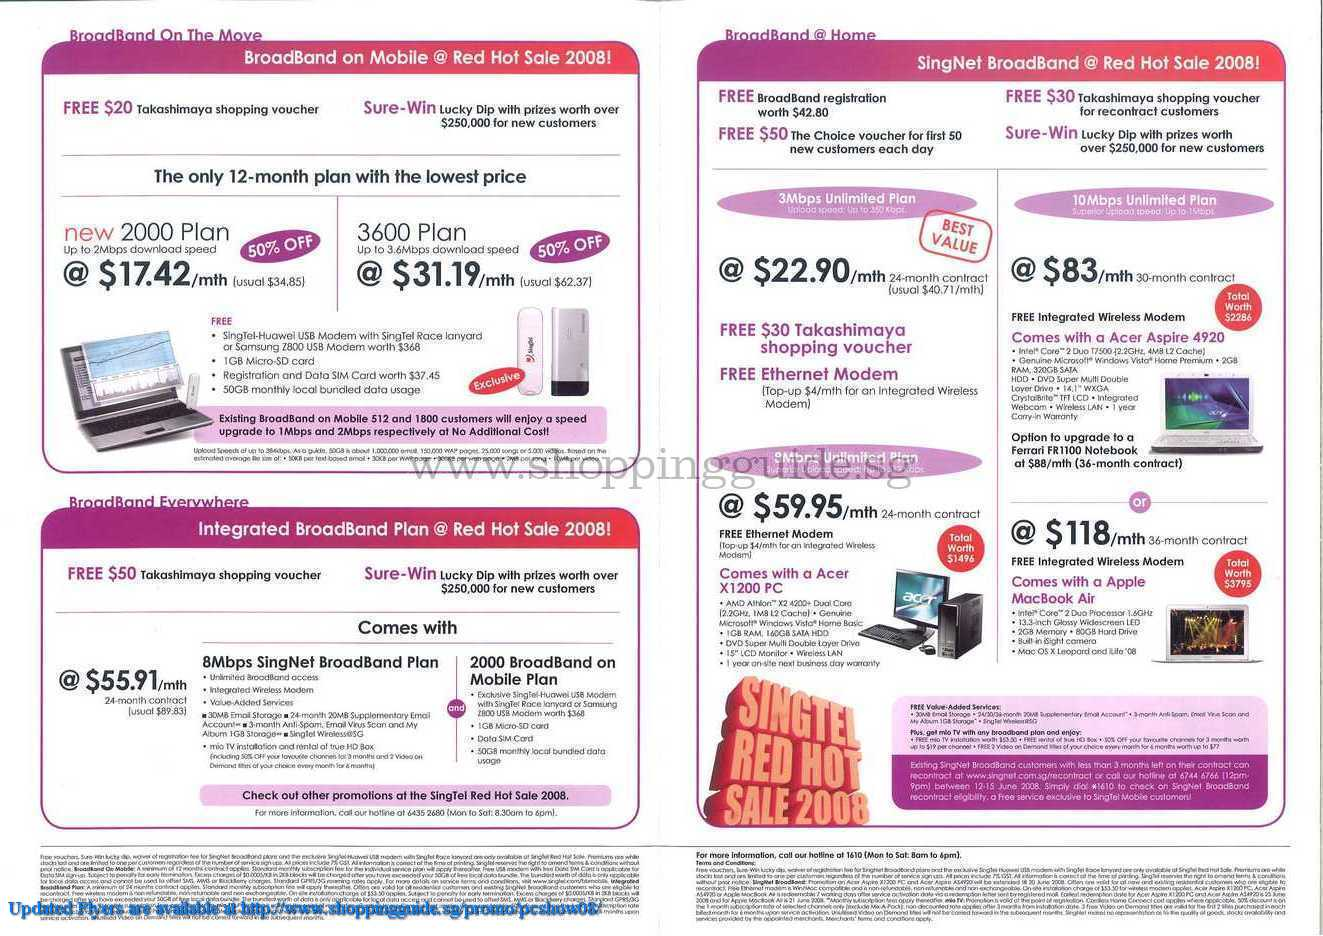 PC Show 2008 price list image brochure of Singnet ShoppingGuide.SG-PcShow08-121